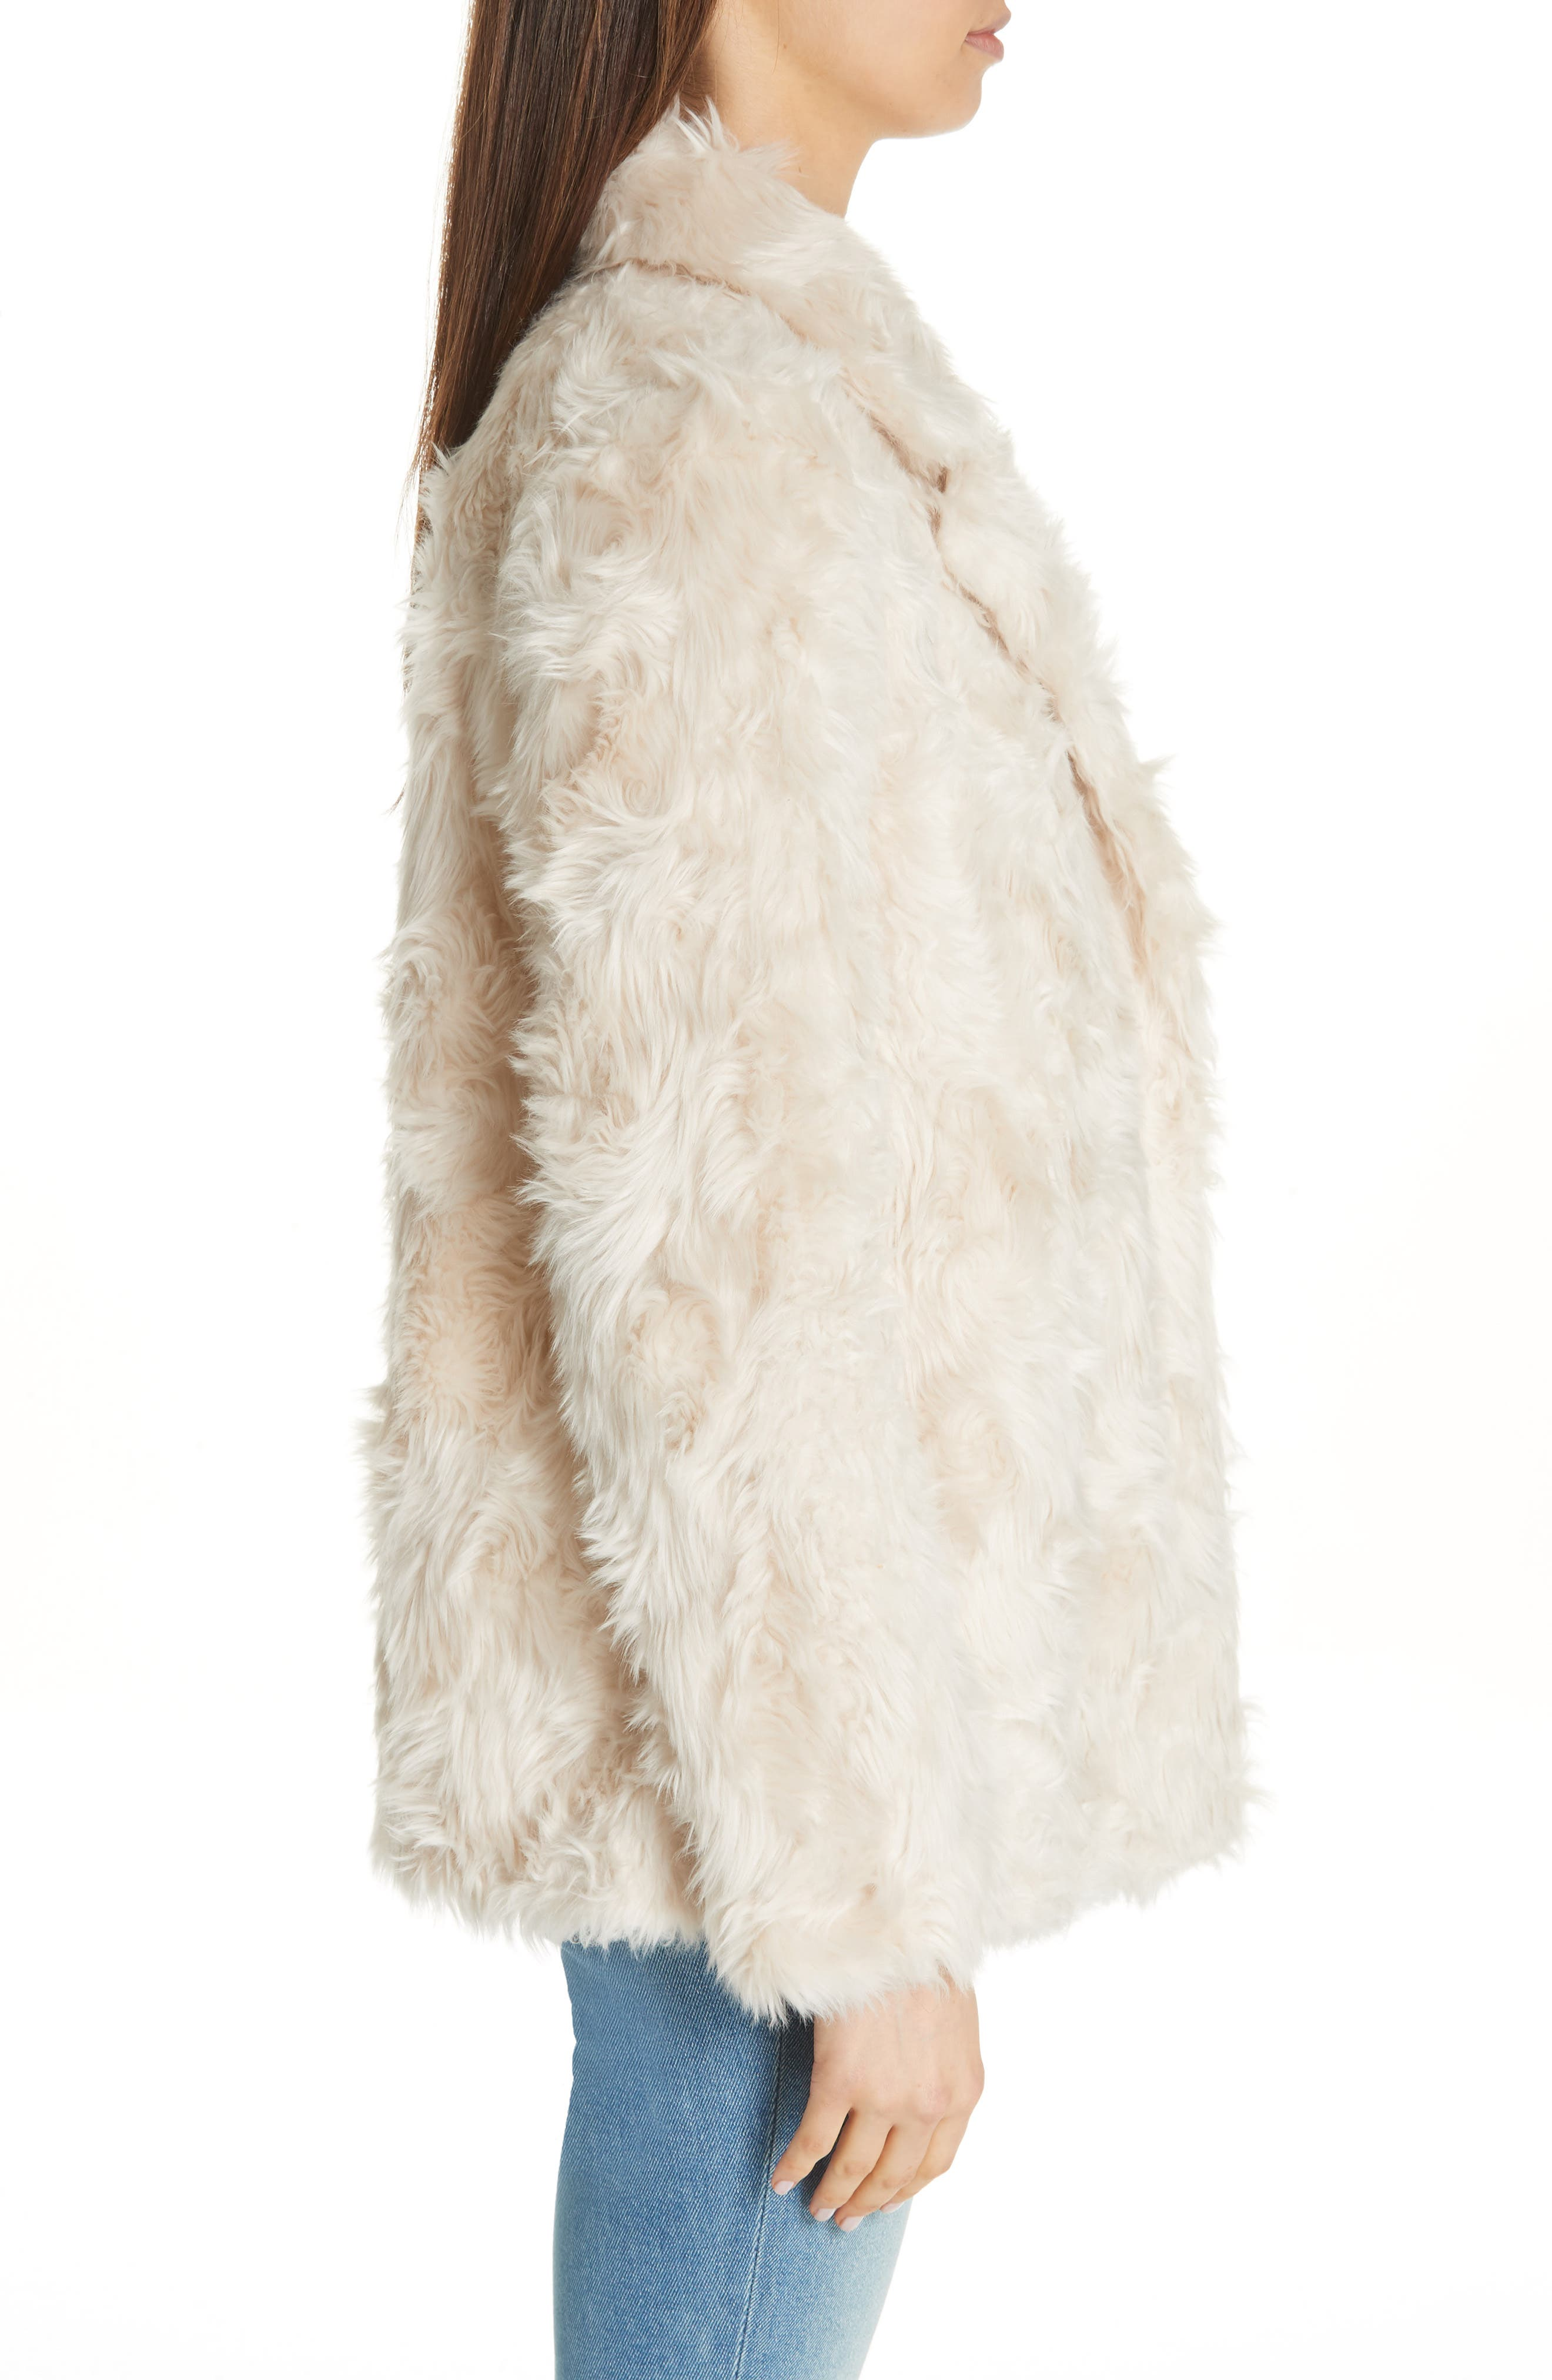 THEORY, Clairene Faux Fur Jacket, Alternate thumbnail 3, color, 907